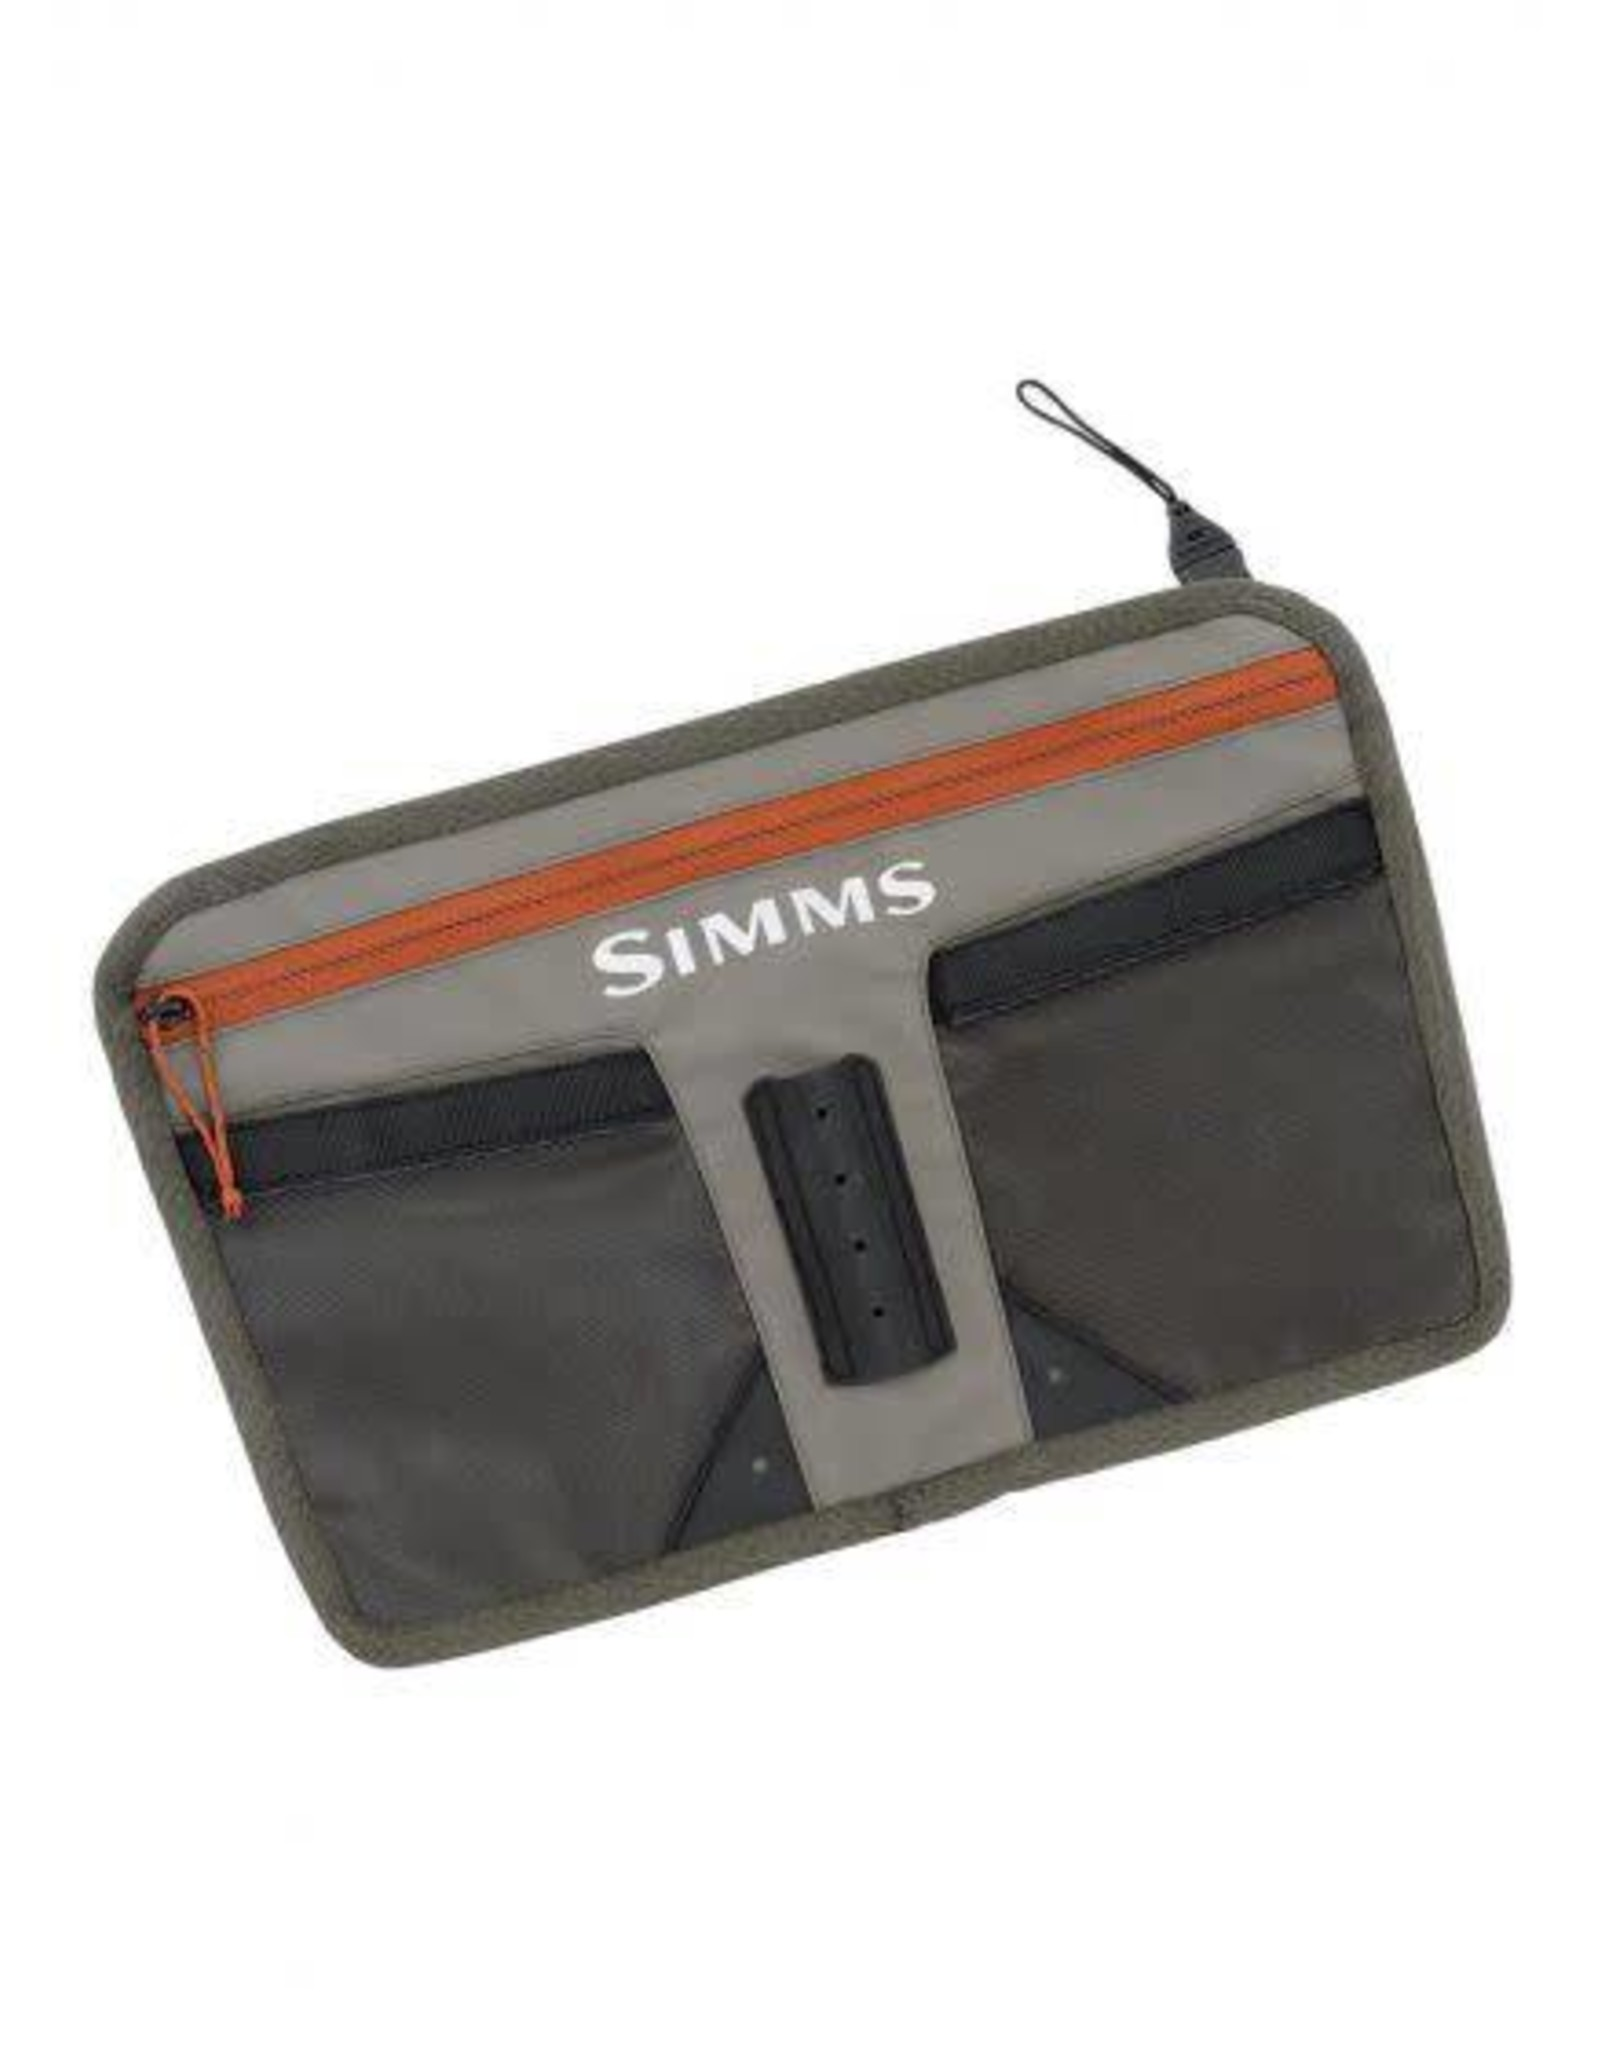 Simms Simms Tippet Tender Wader Pouch - Greystone